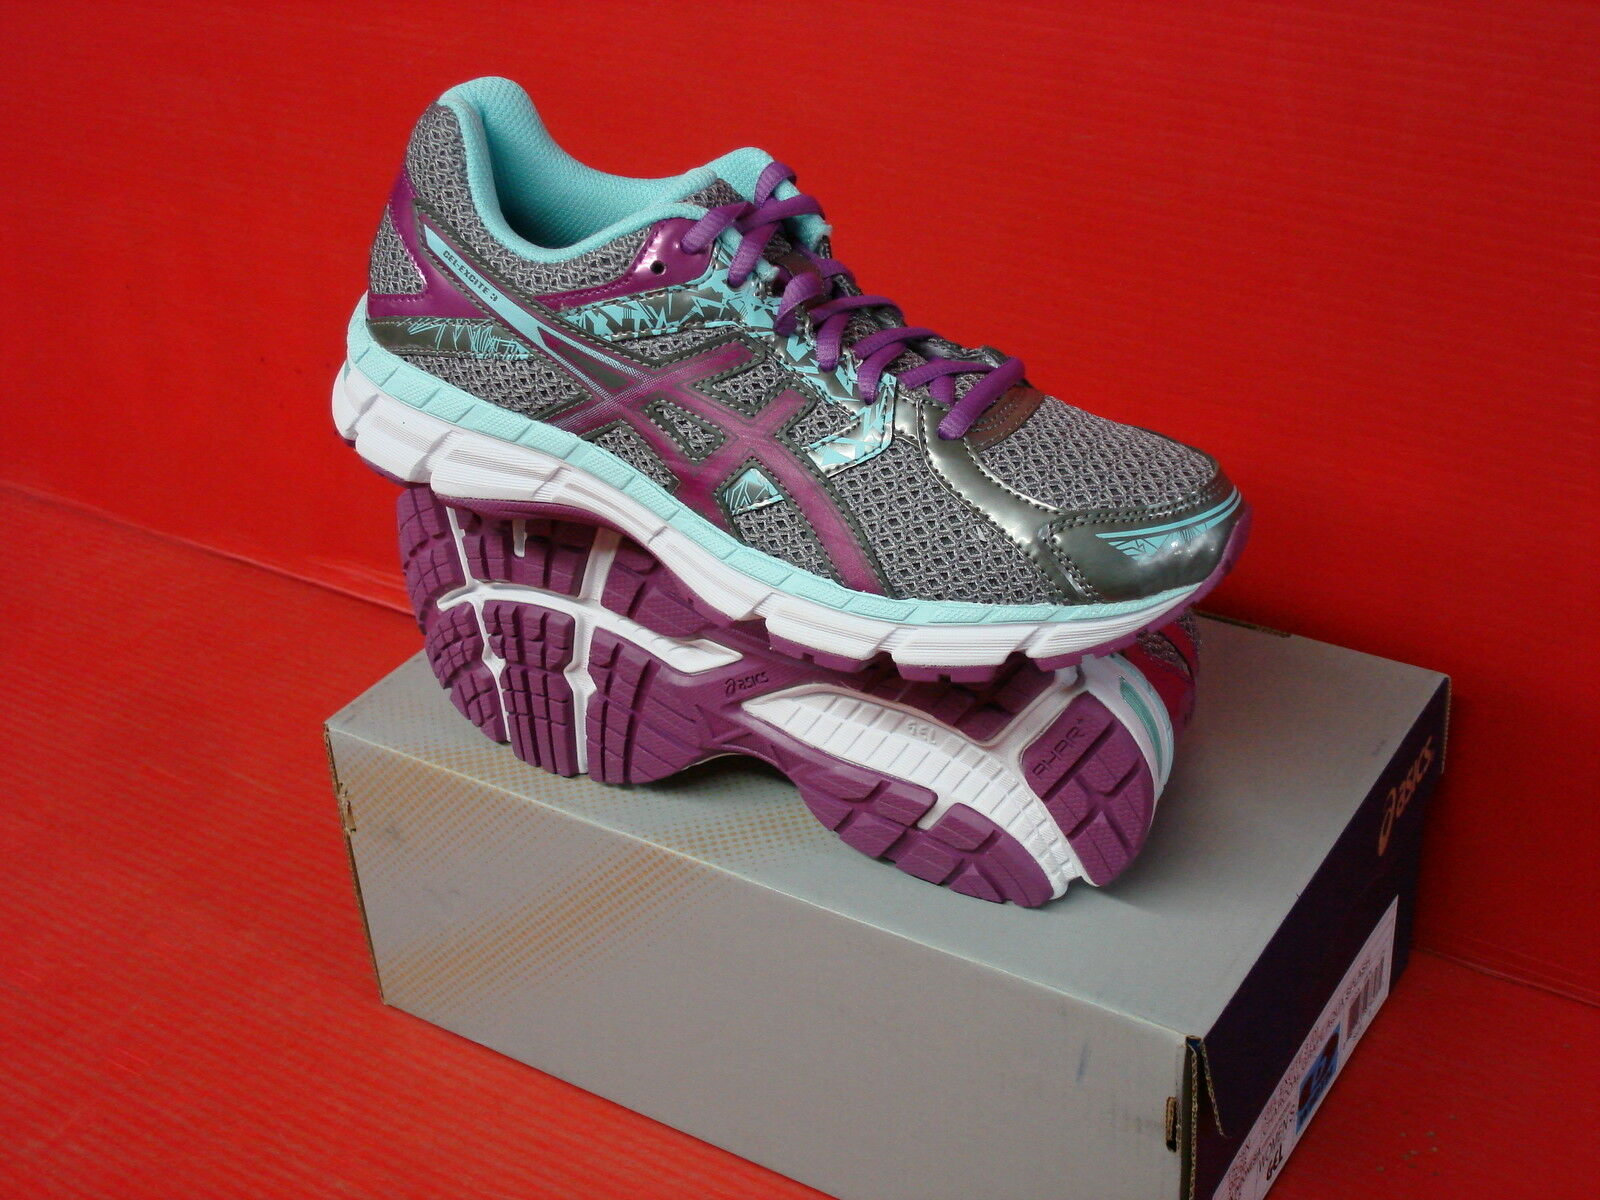 ASICS GEL-EXCITE 3 Price reduction WOMENS RUNNING T5C5N New shoes for men and women, limited time discount